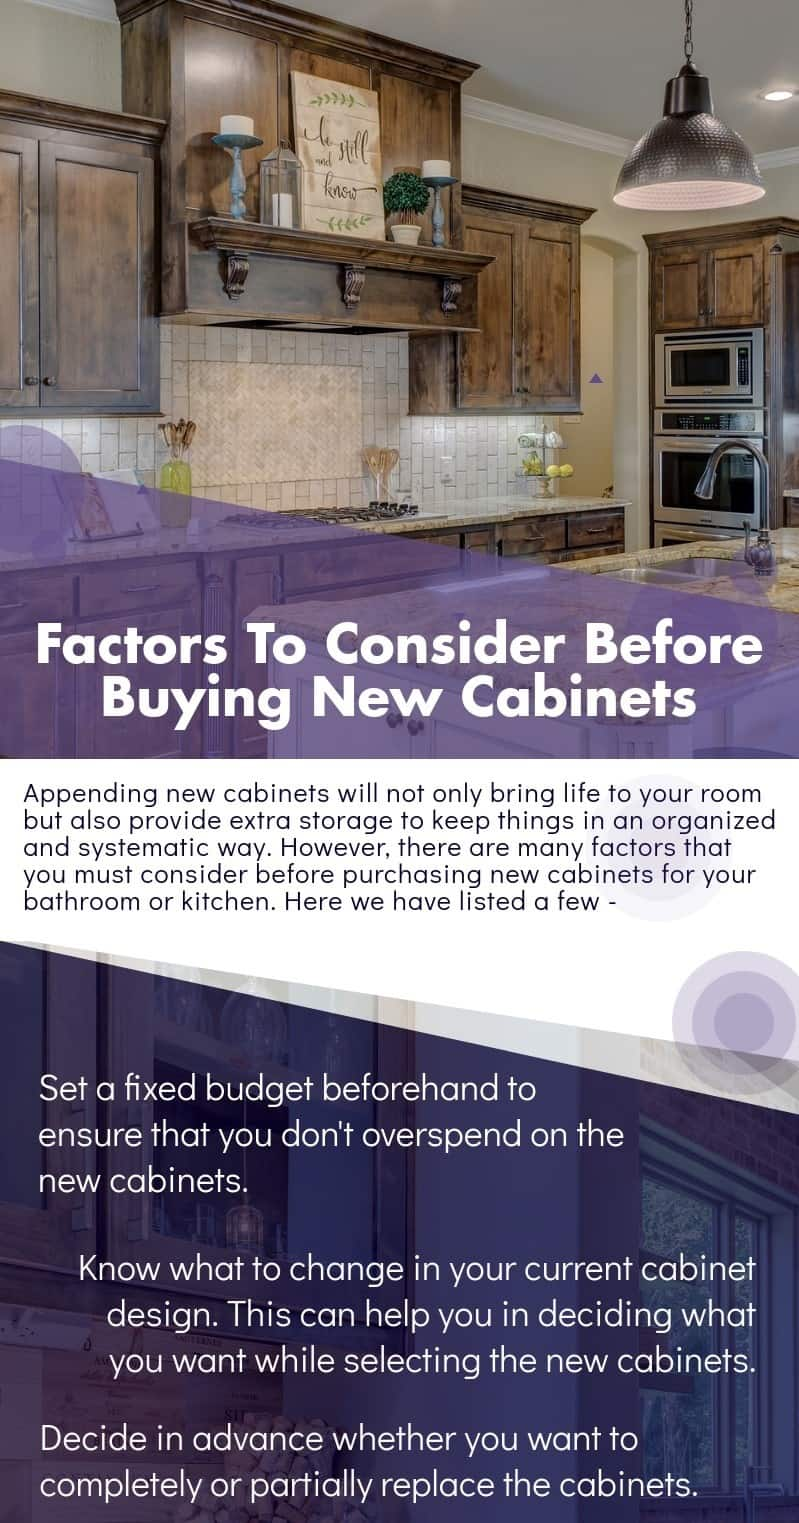 Factors To Consider Before Buying New Cabinets